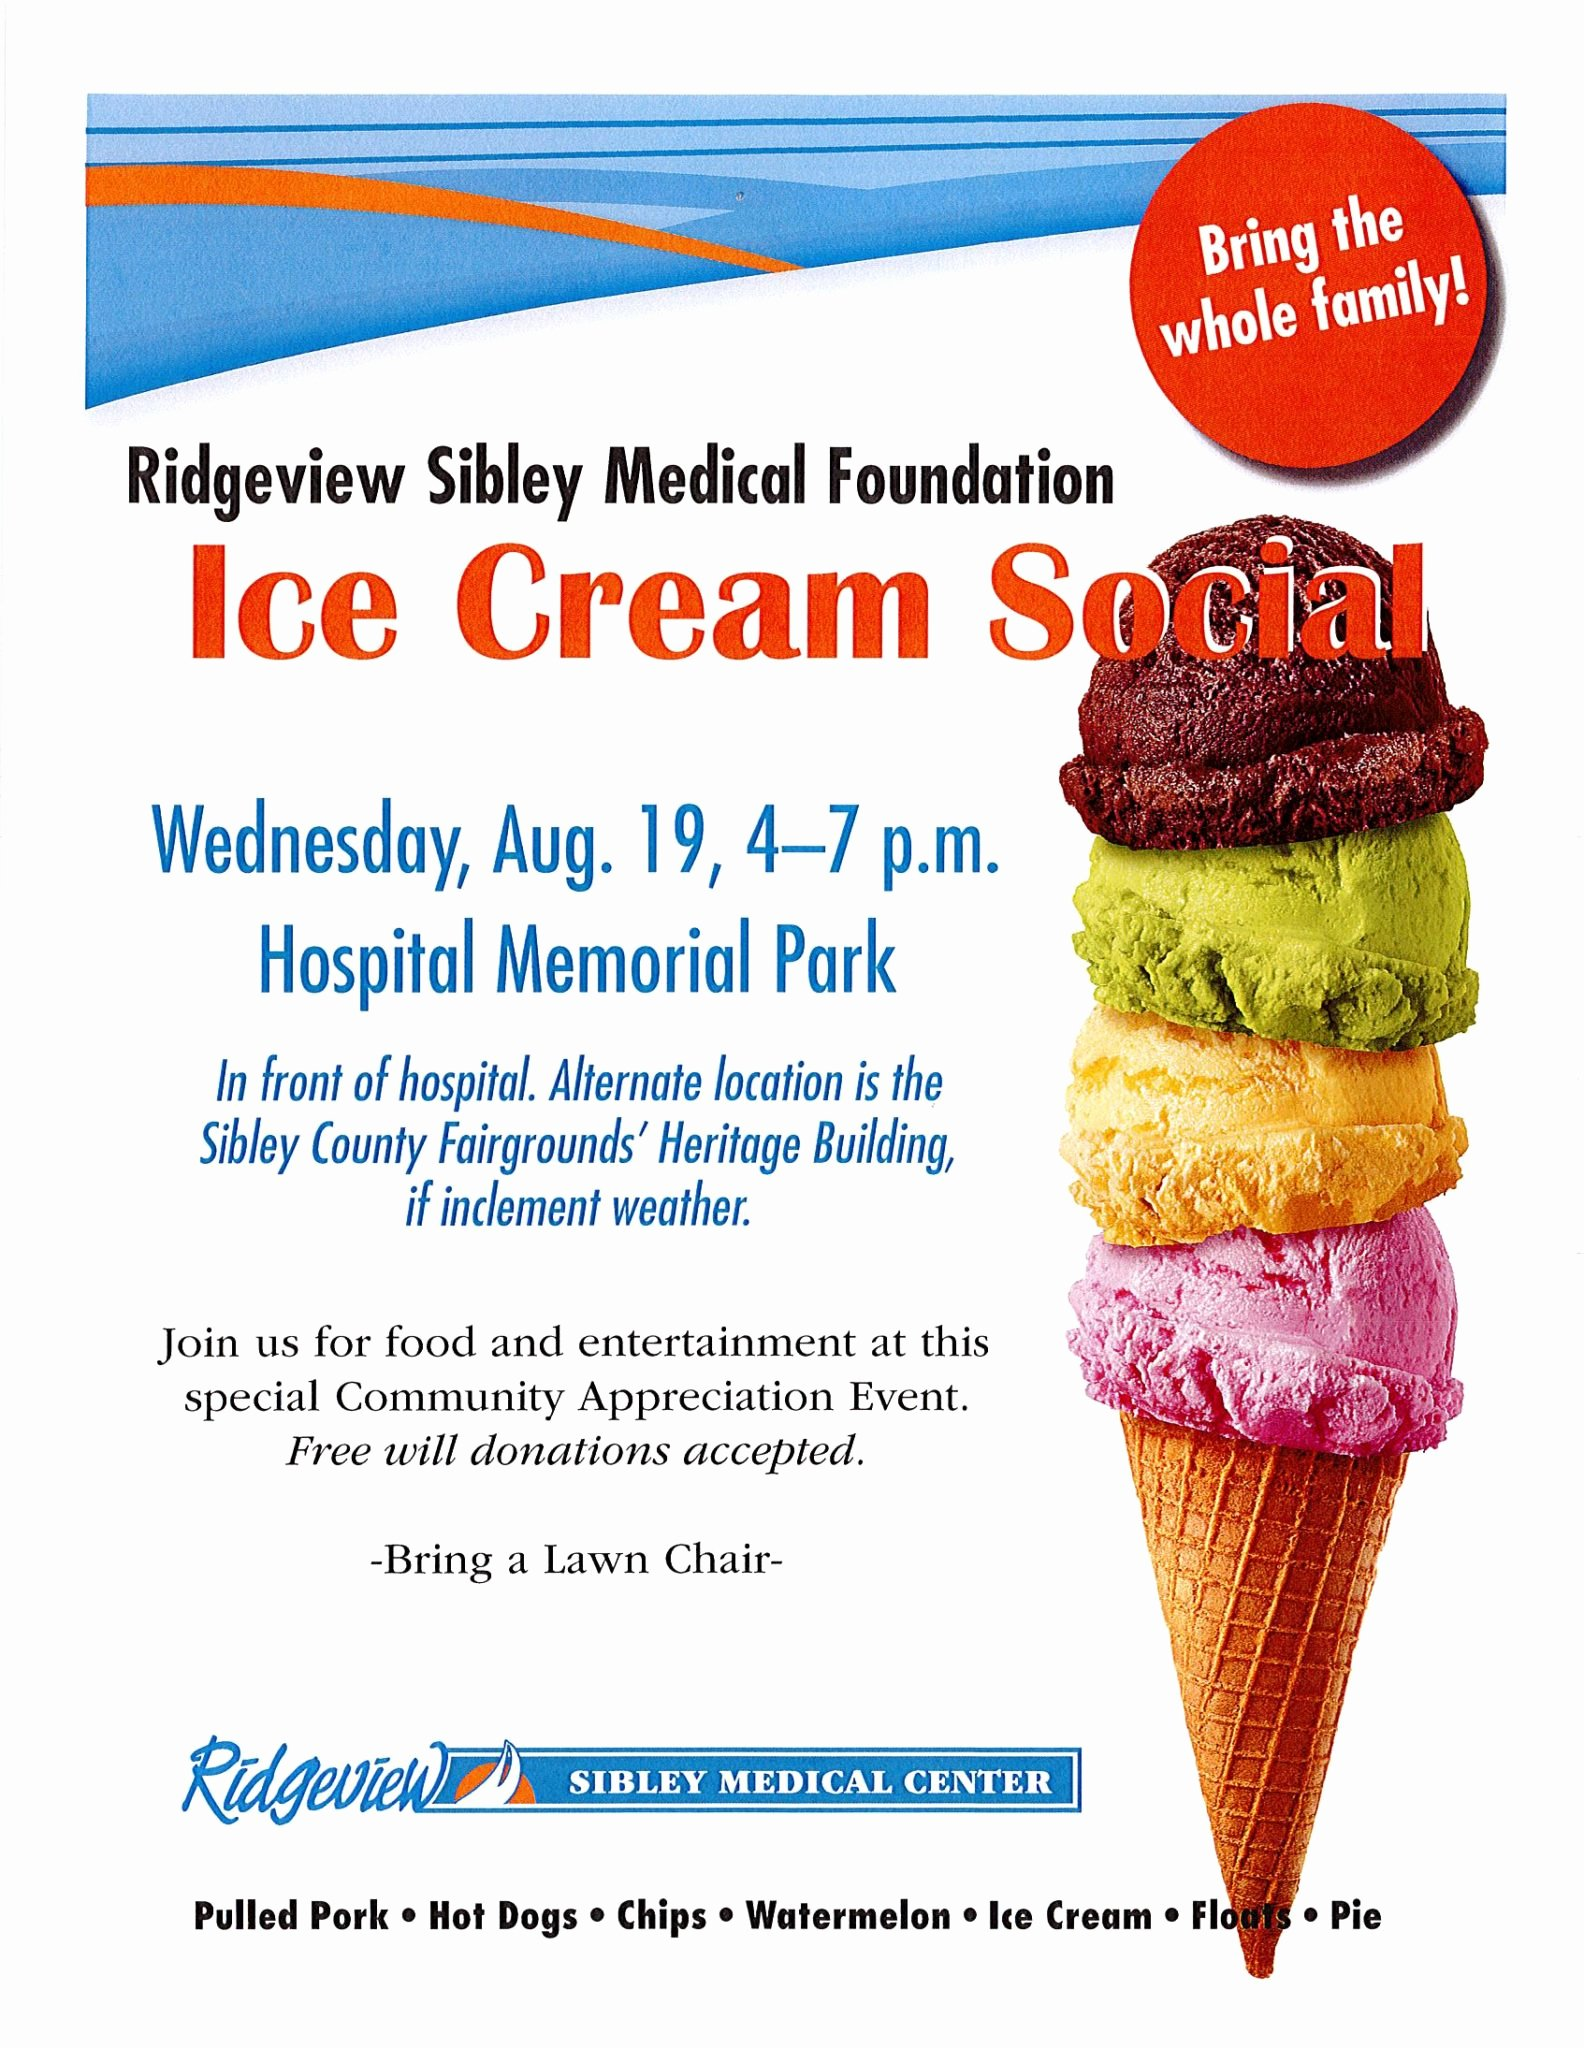 Ice Cream social Flyer Luxury Ridgeview Sibley Medical Foundation Ice Cream social City Of Arlington